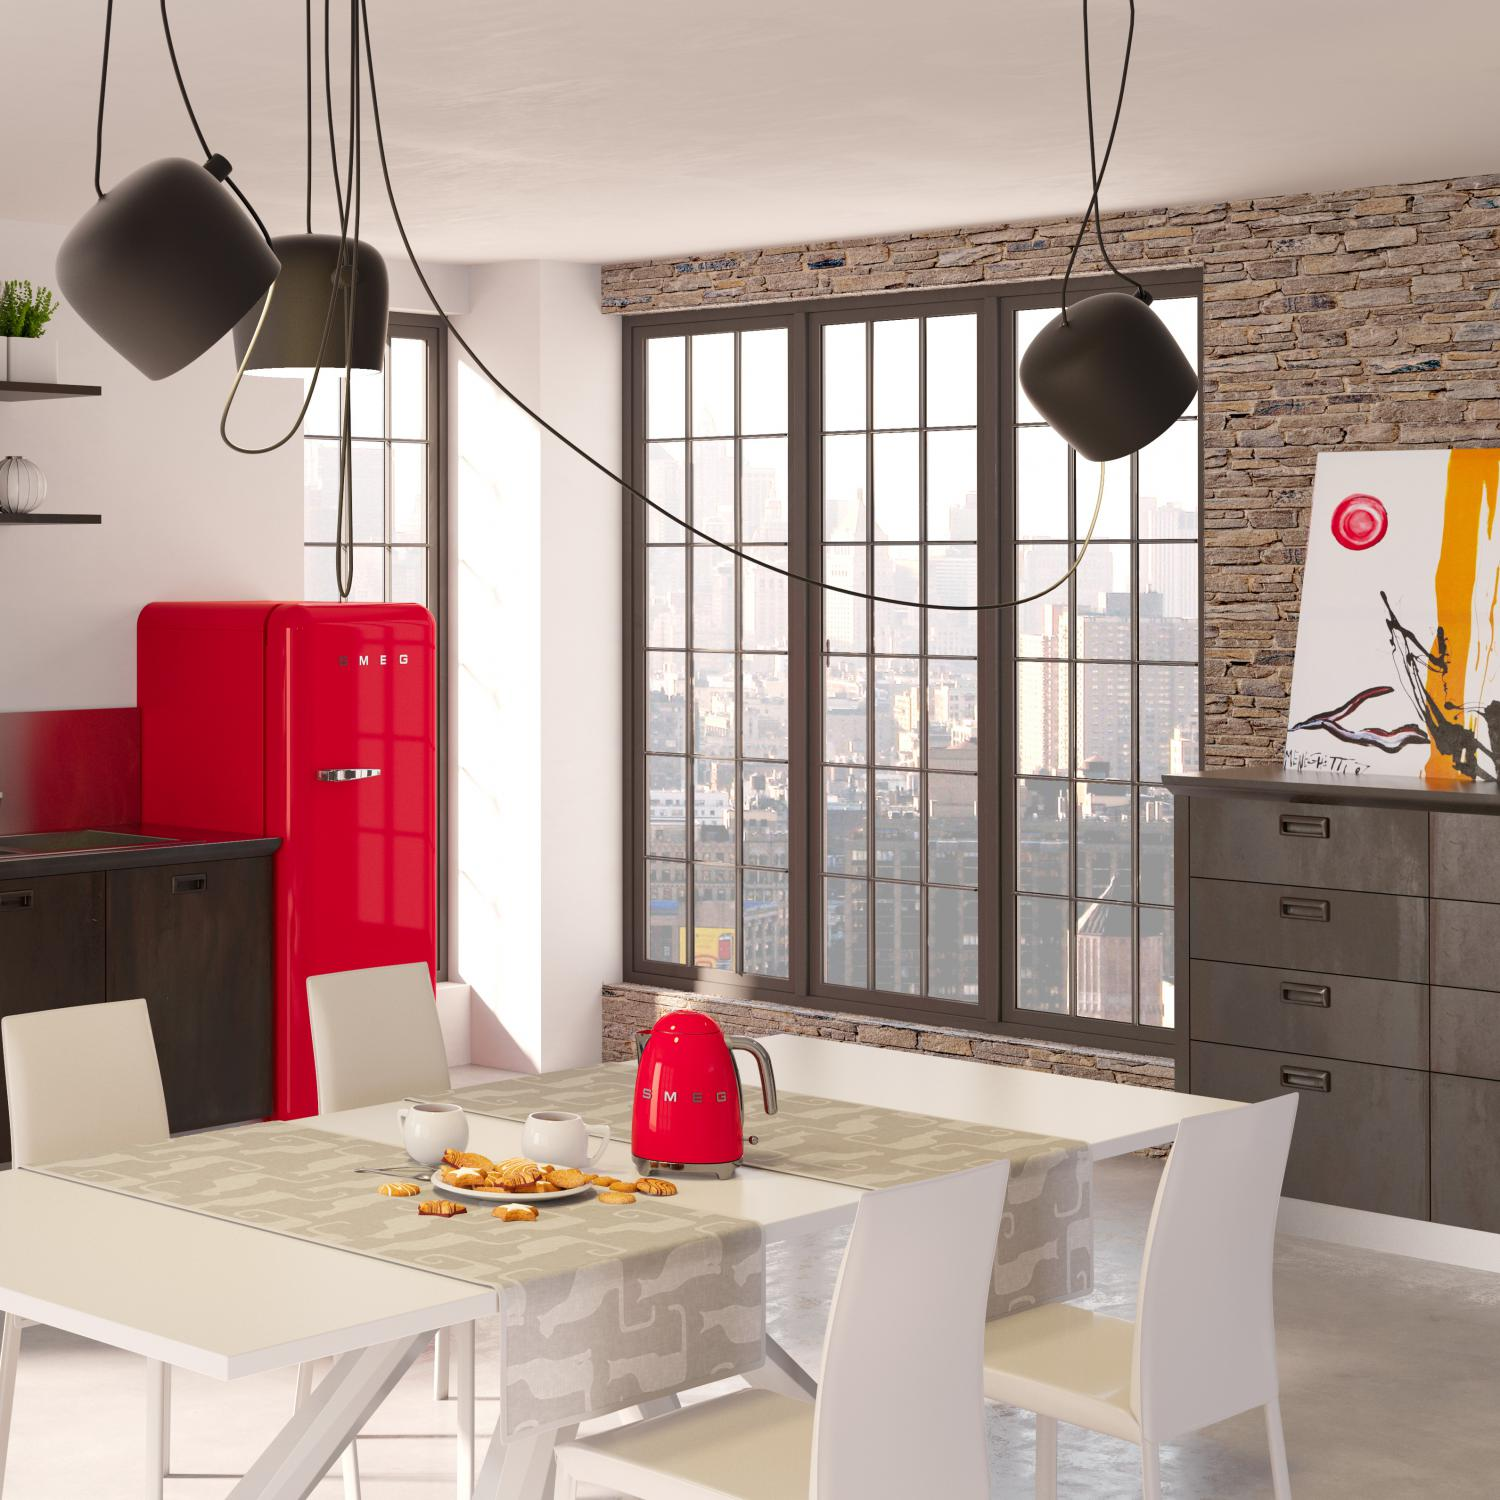 invade your home interior with retro style appliance for unique